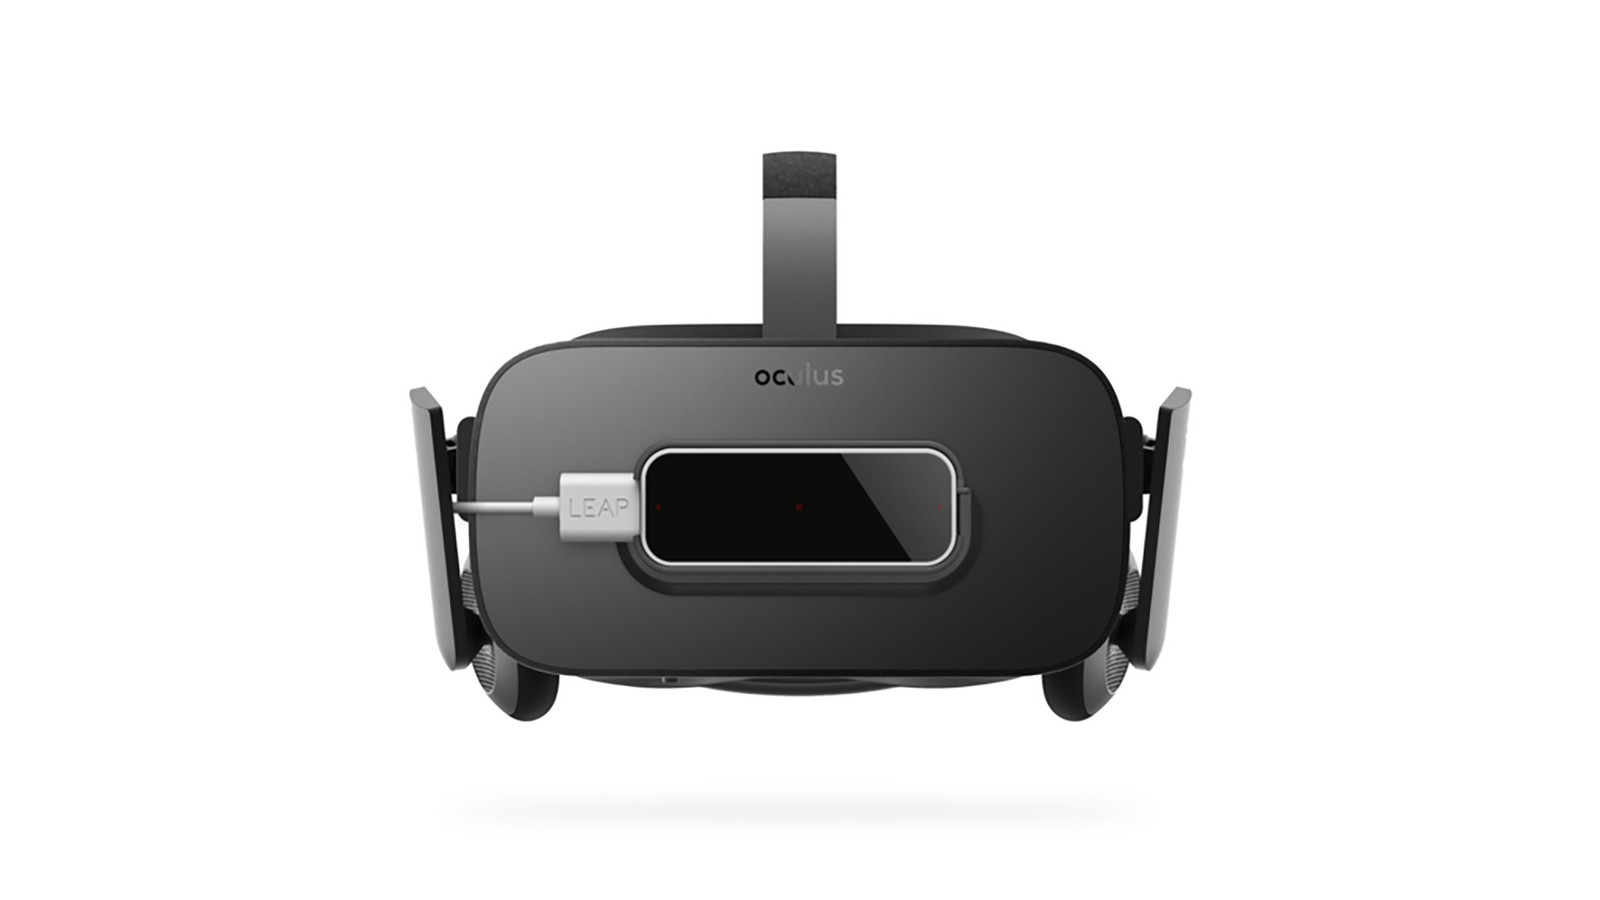 How to use Leap Motion with your Oculus Rift